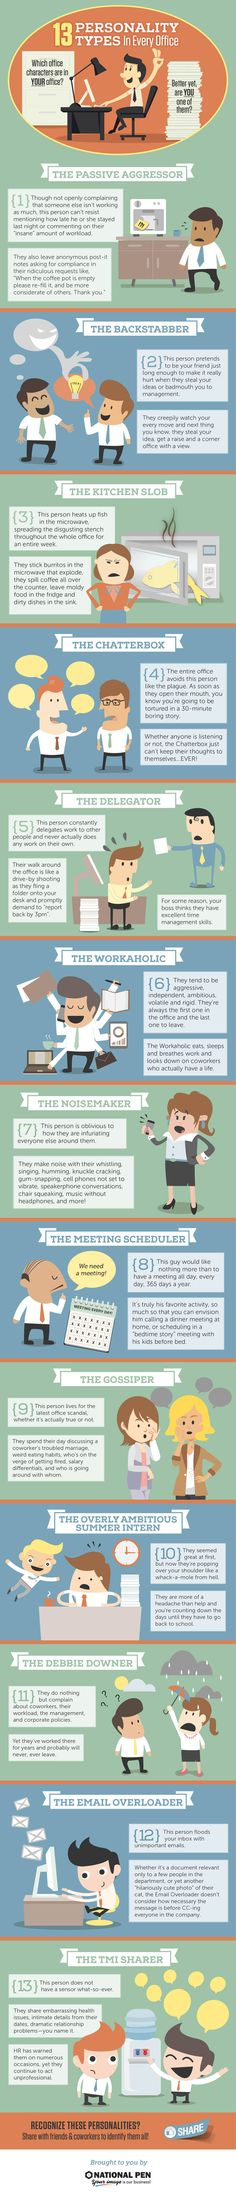 13 Personality Types Found In Almost Every Busy Office #infographic